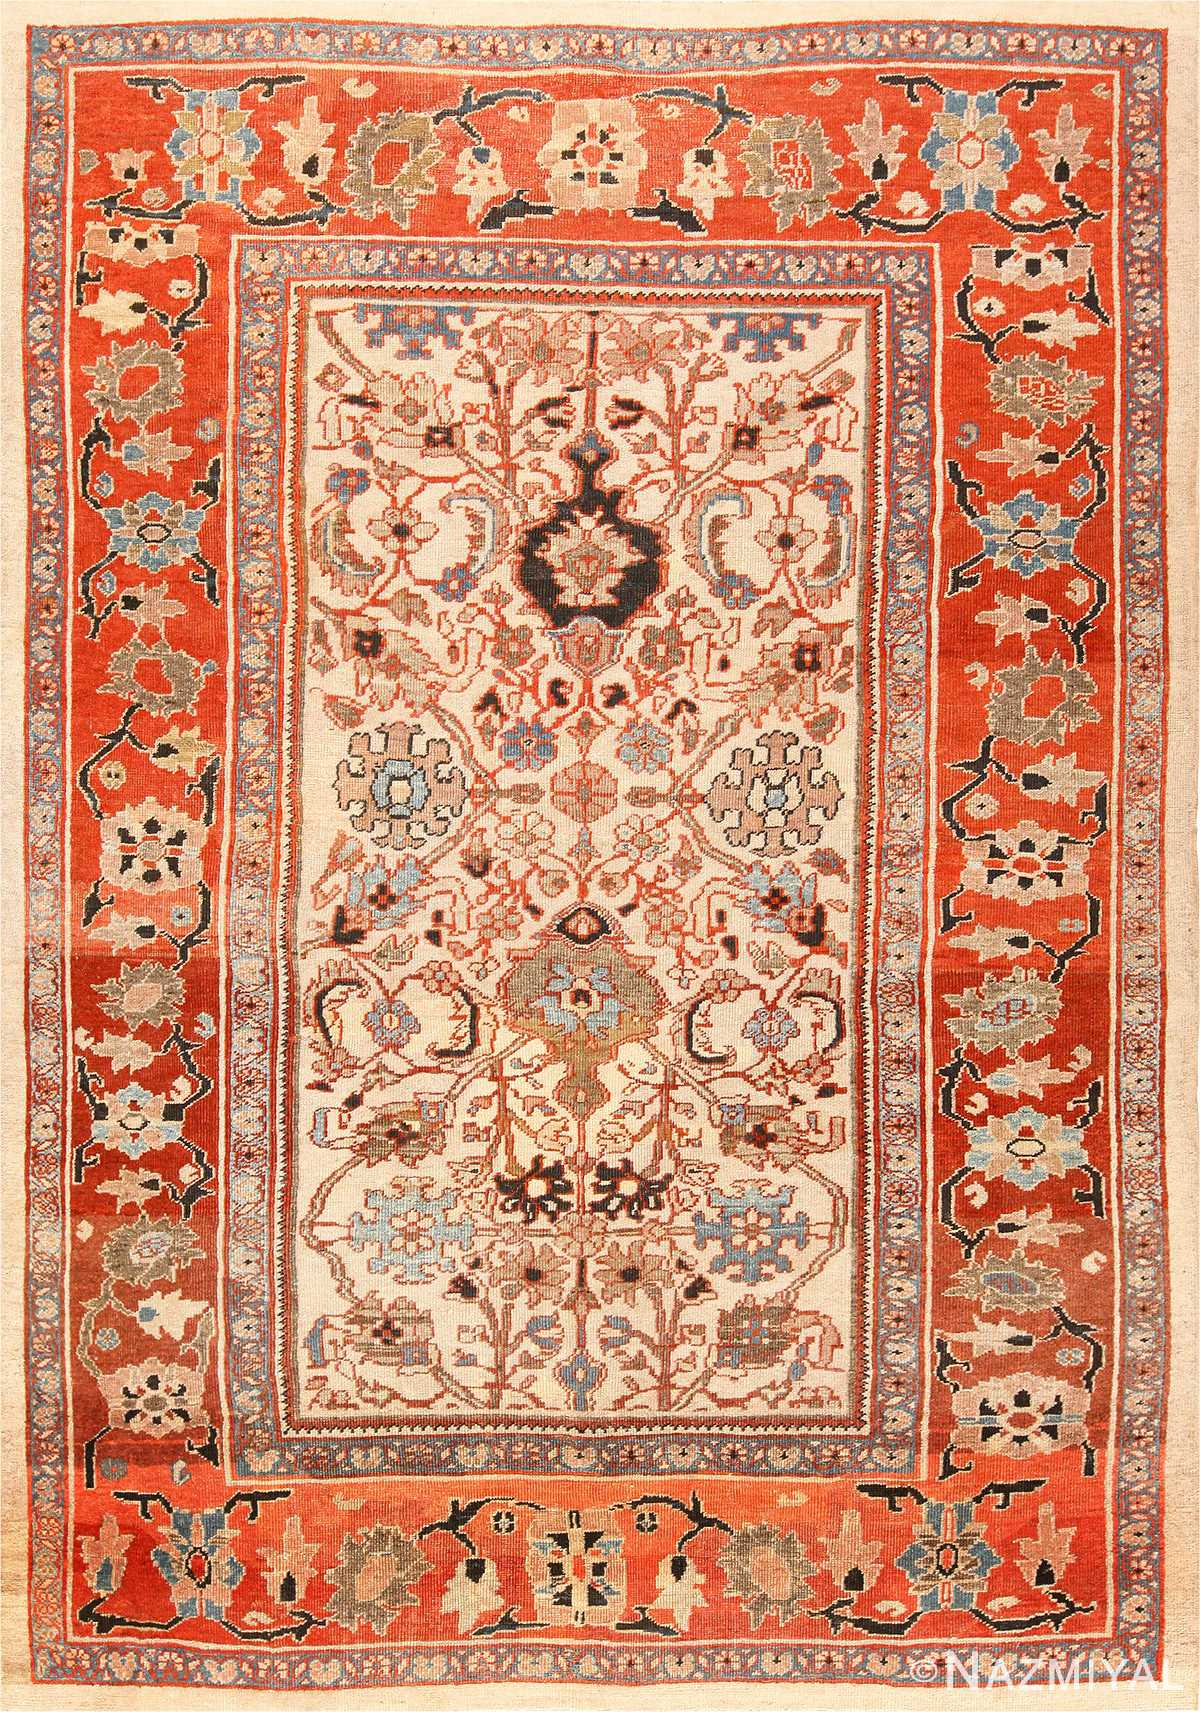 Dating antique rugs